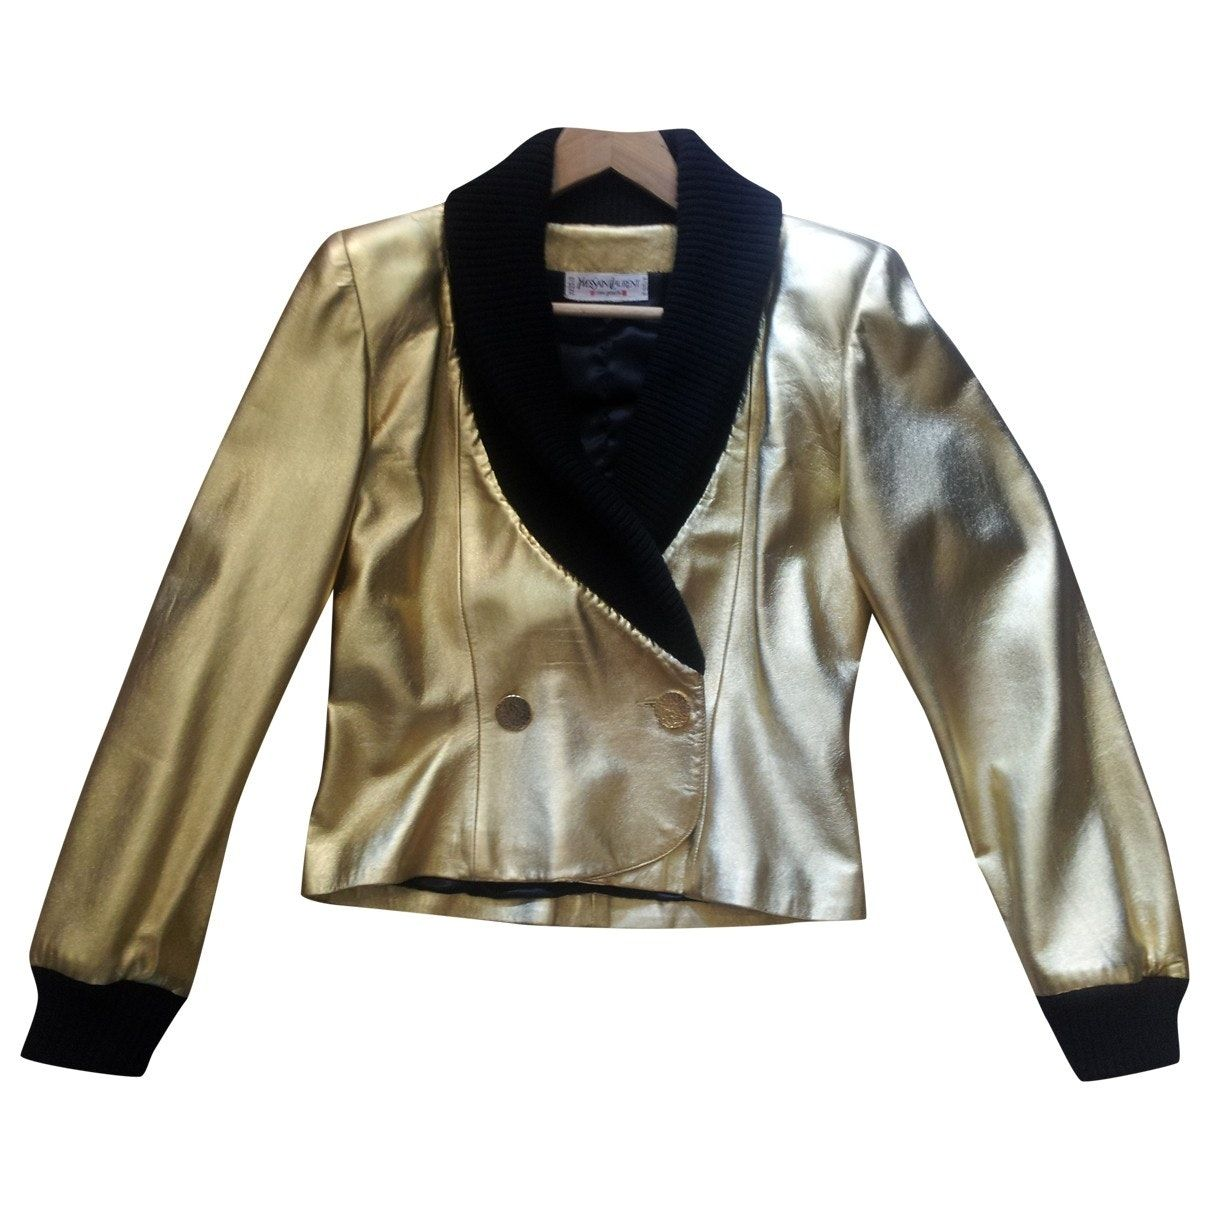 Leather jacket Yves Saint Laurent Gold size 40 FR in